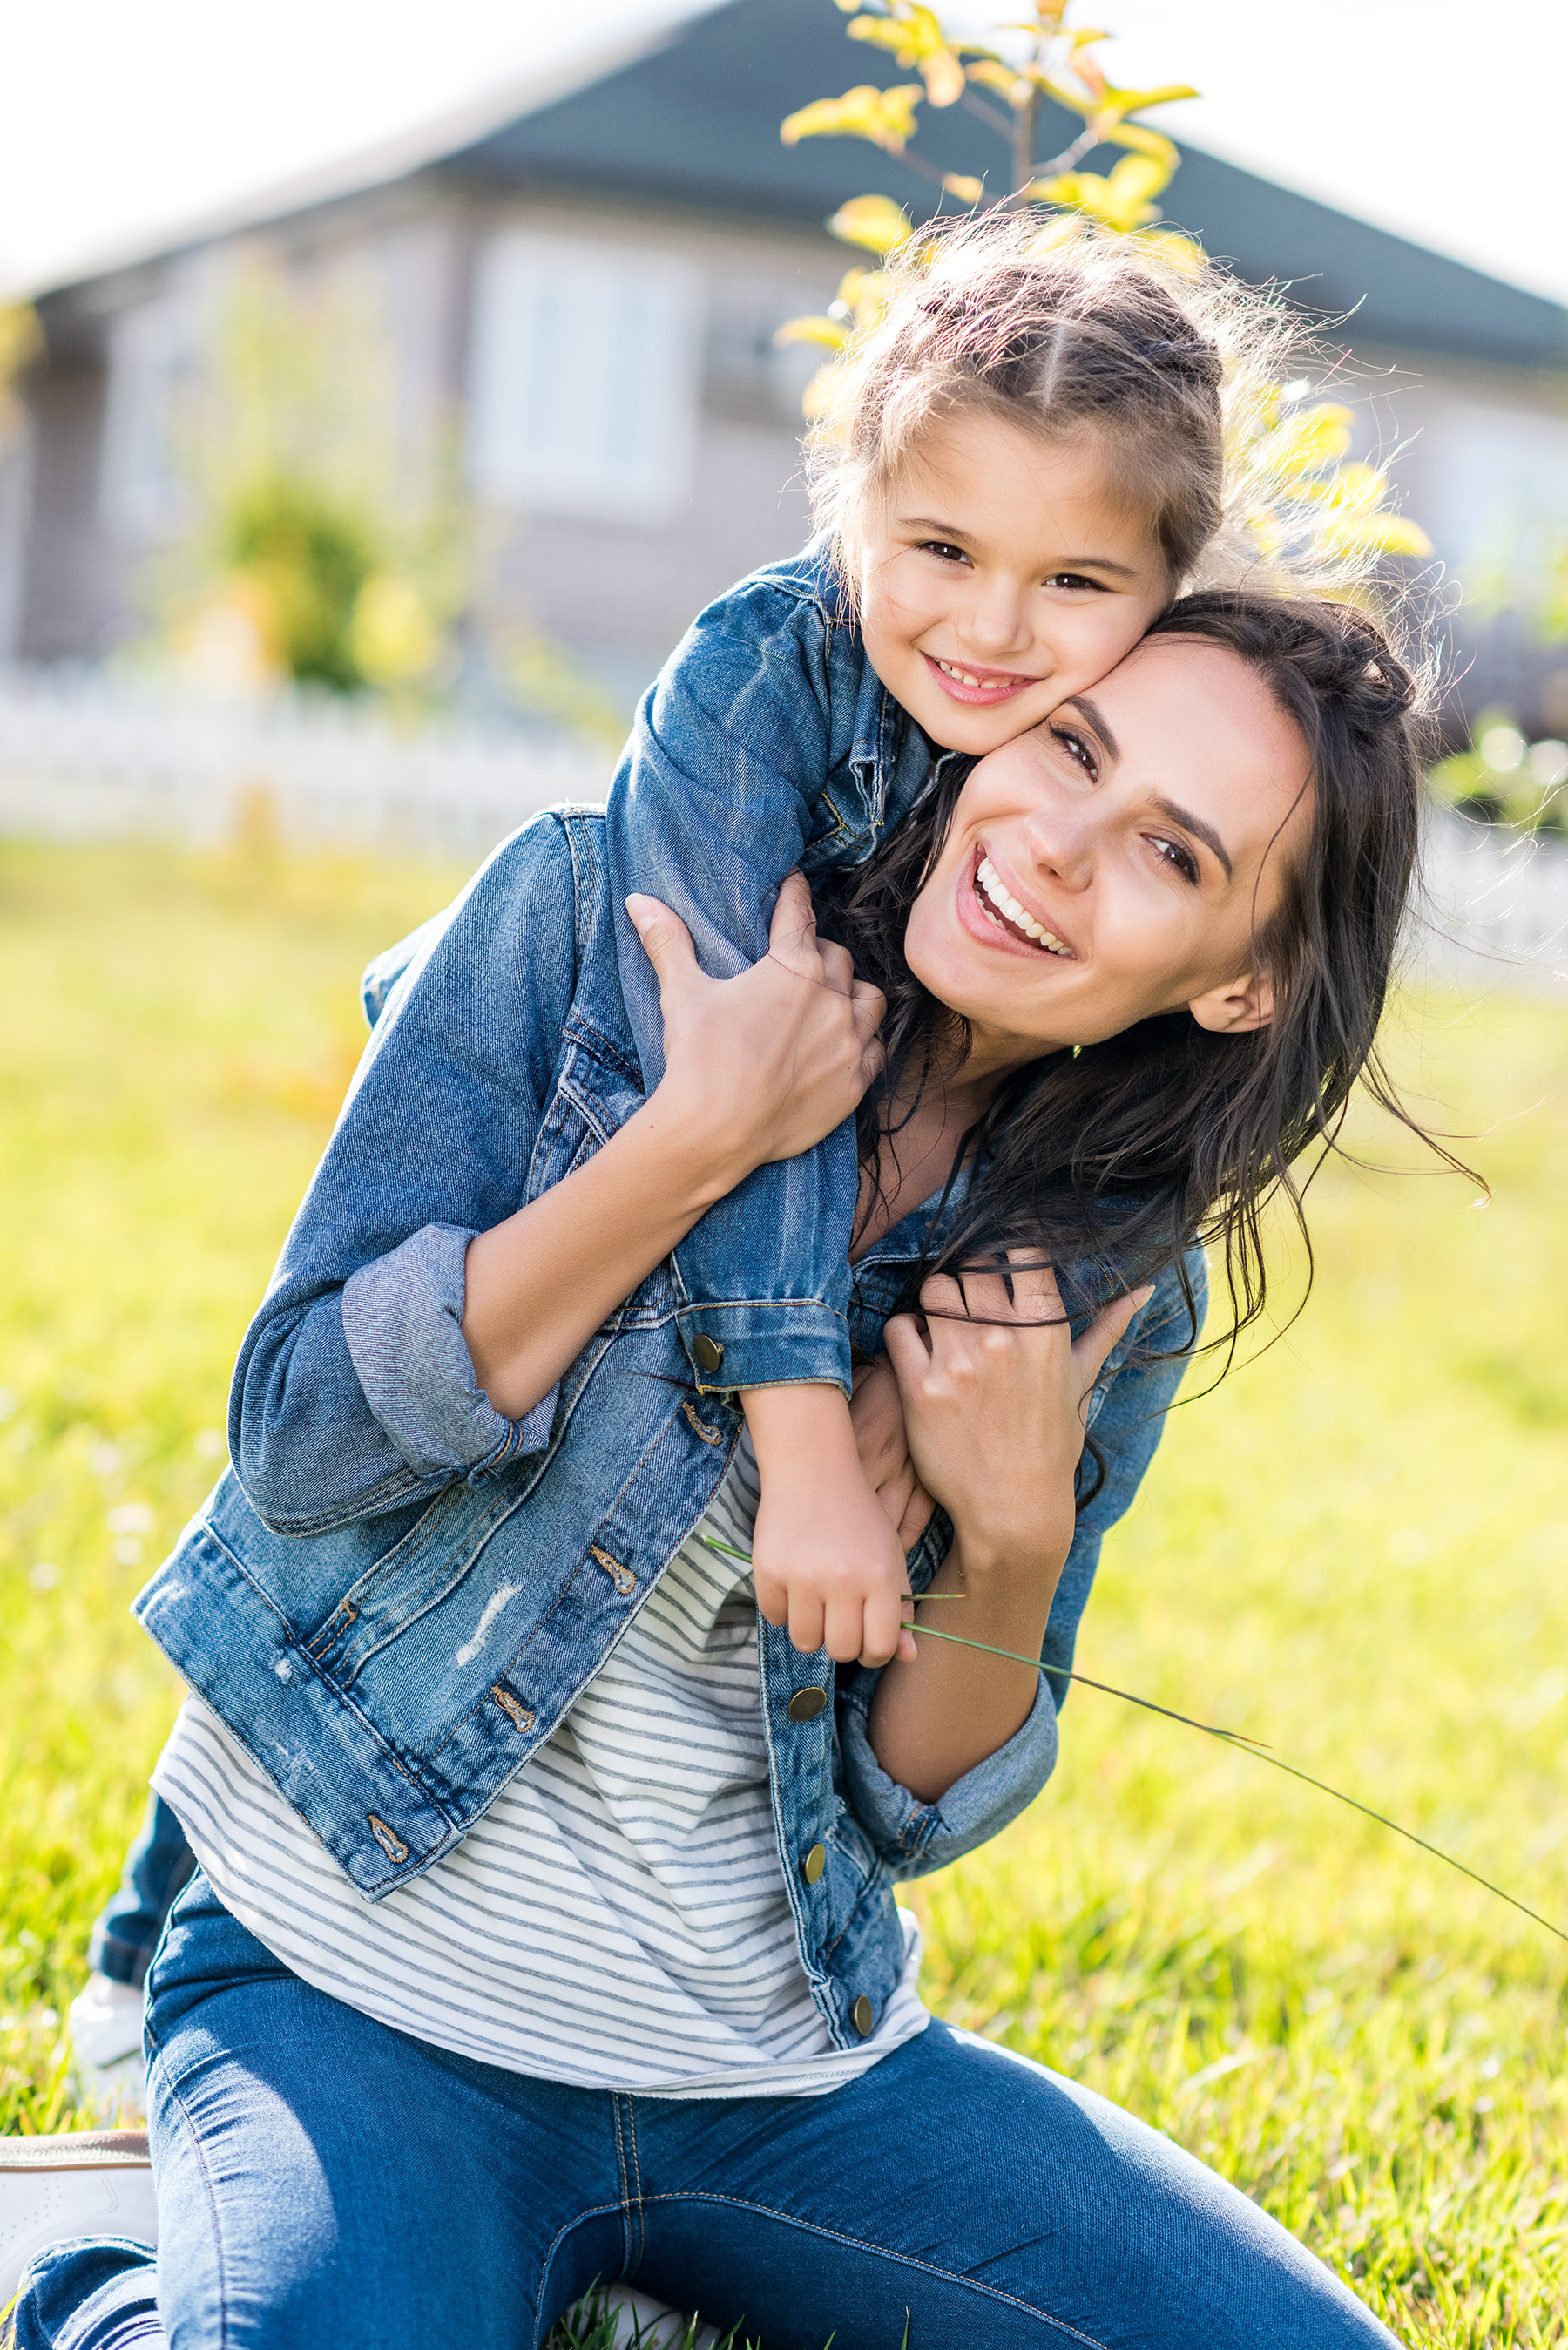 5 Things Confident Moms Do